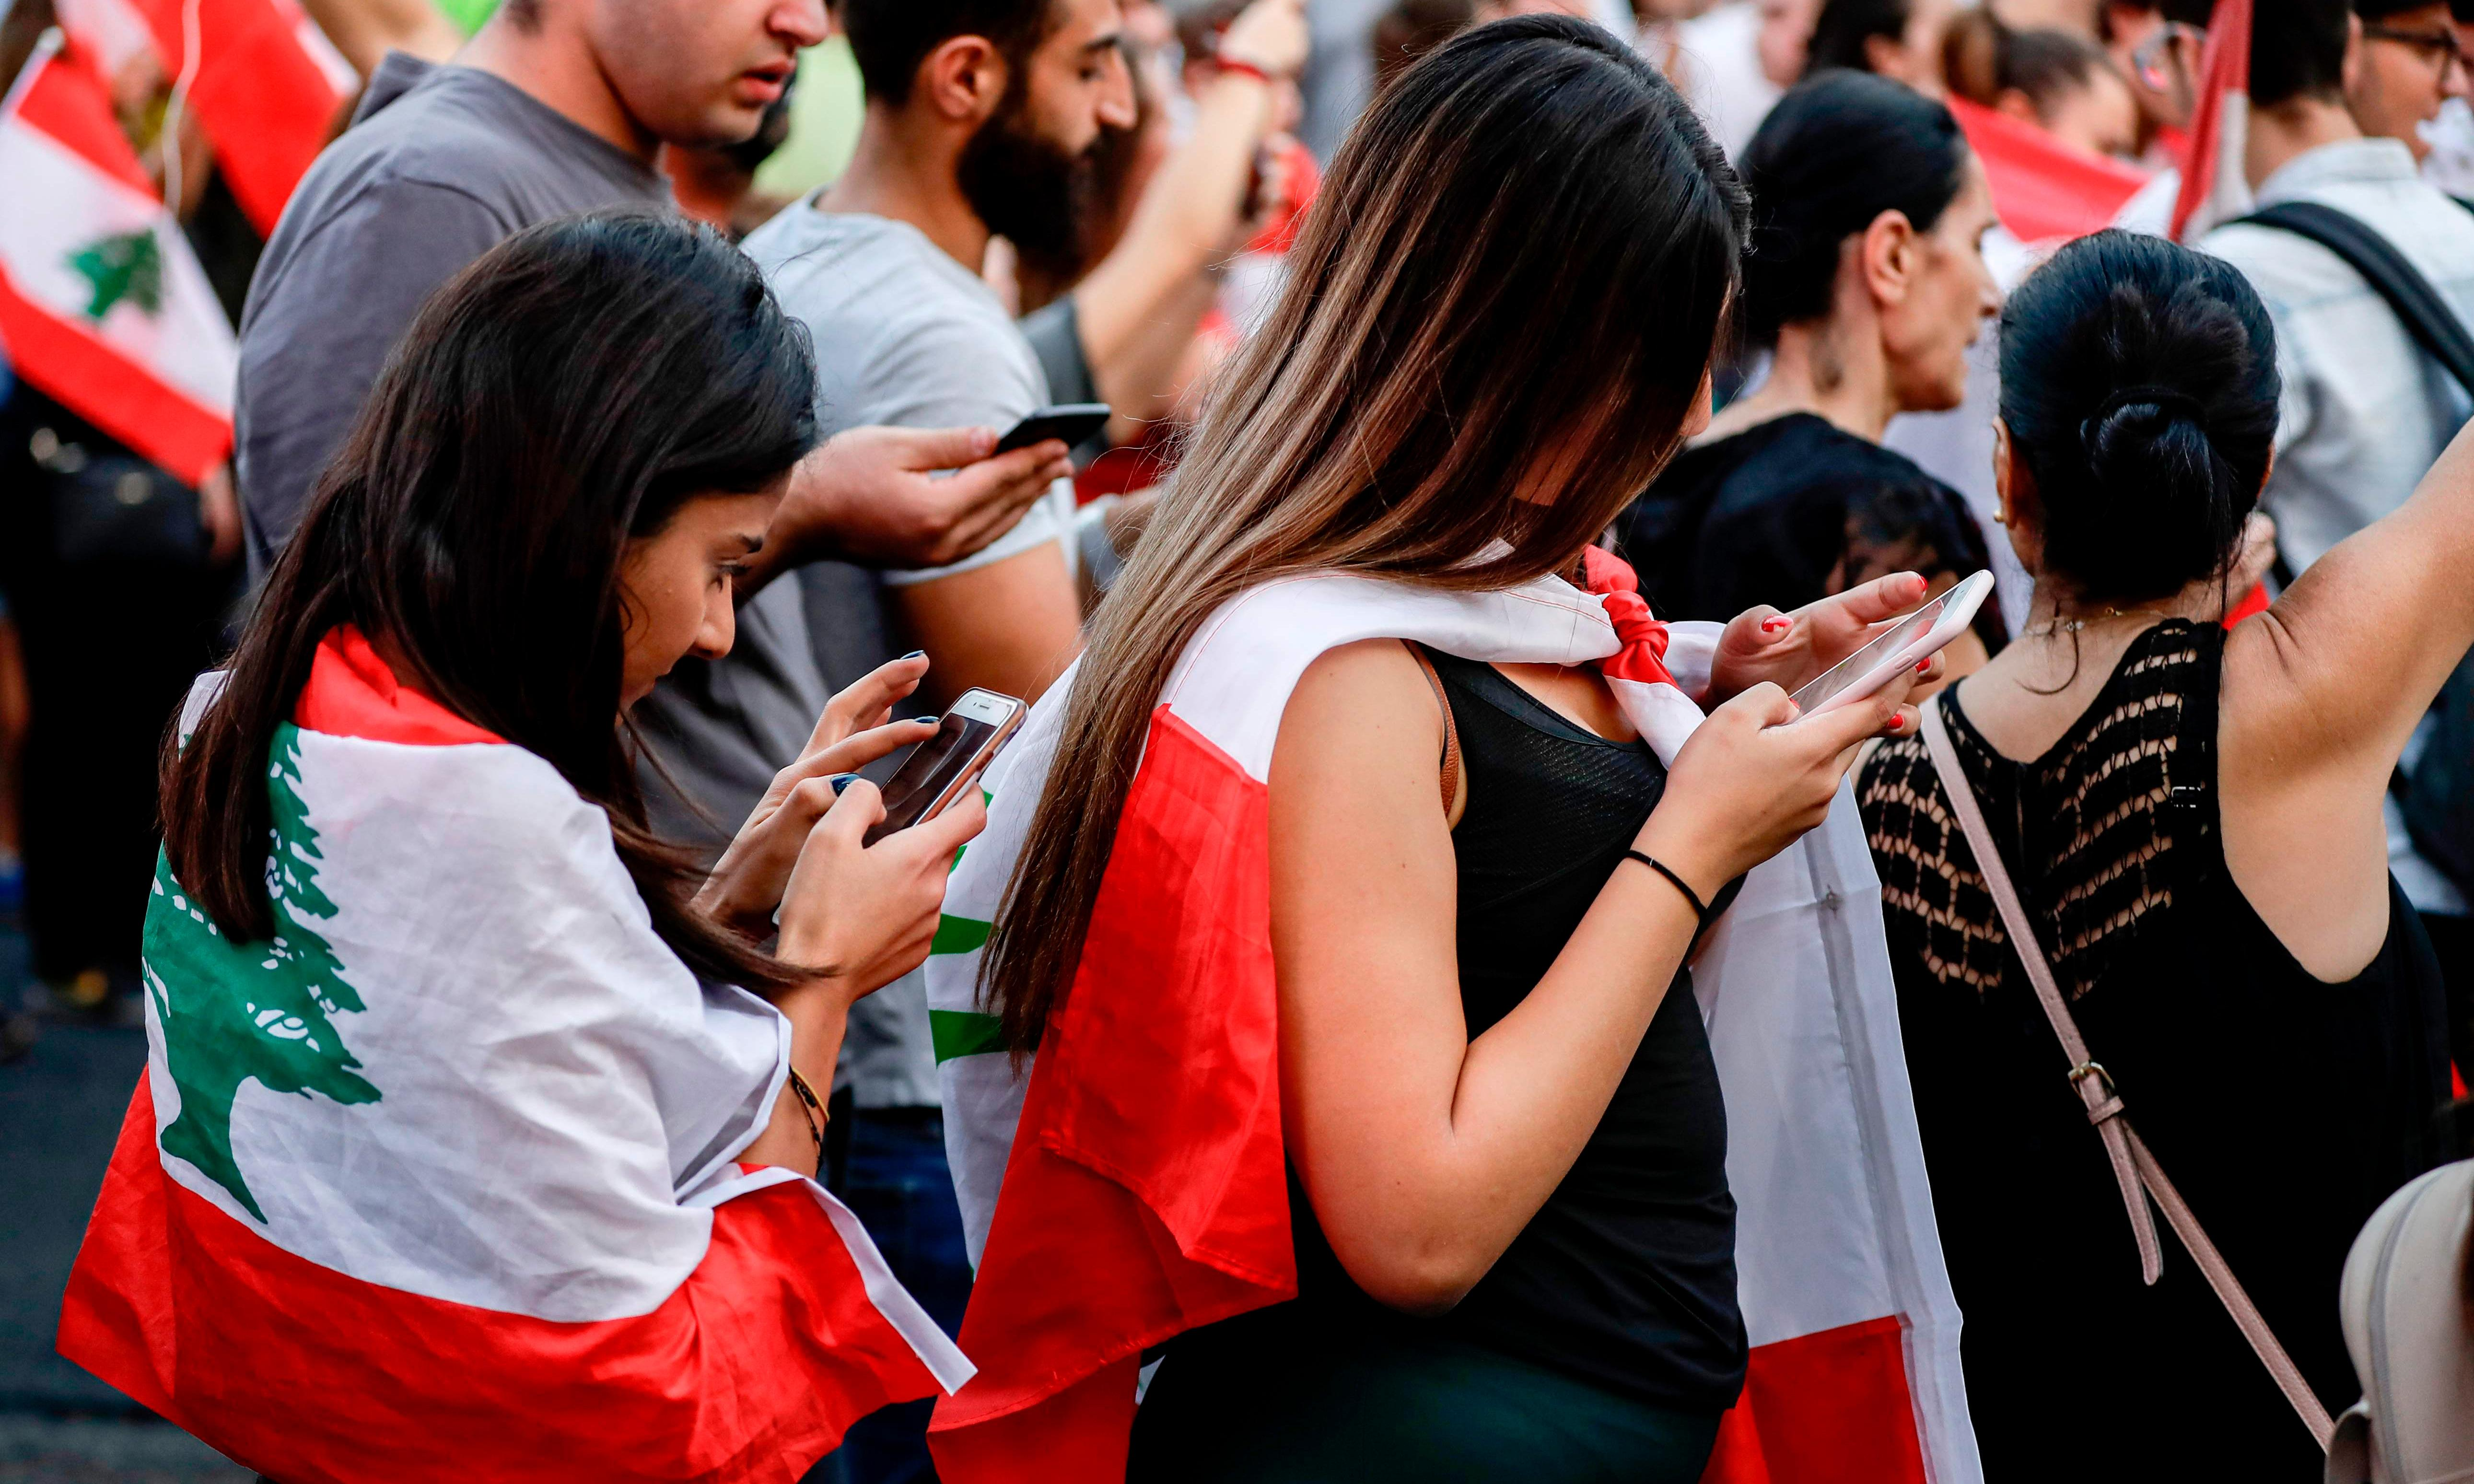 #Disinformation: the online threat to protest in the Middle East